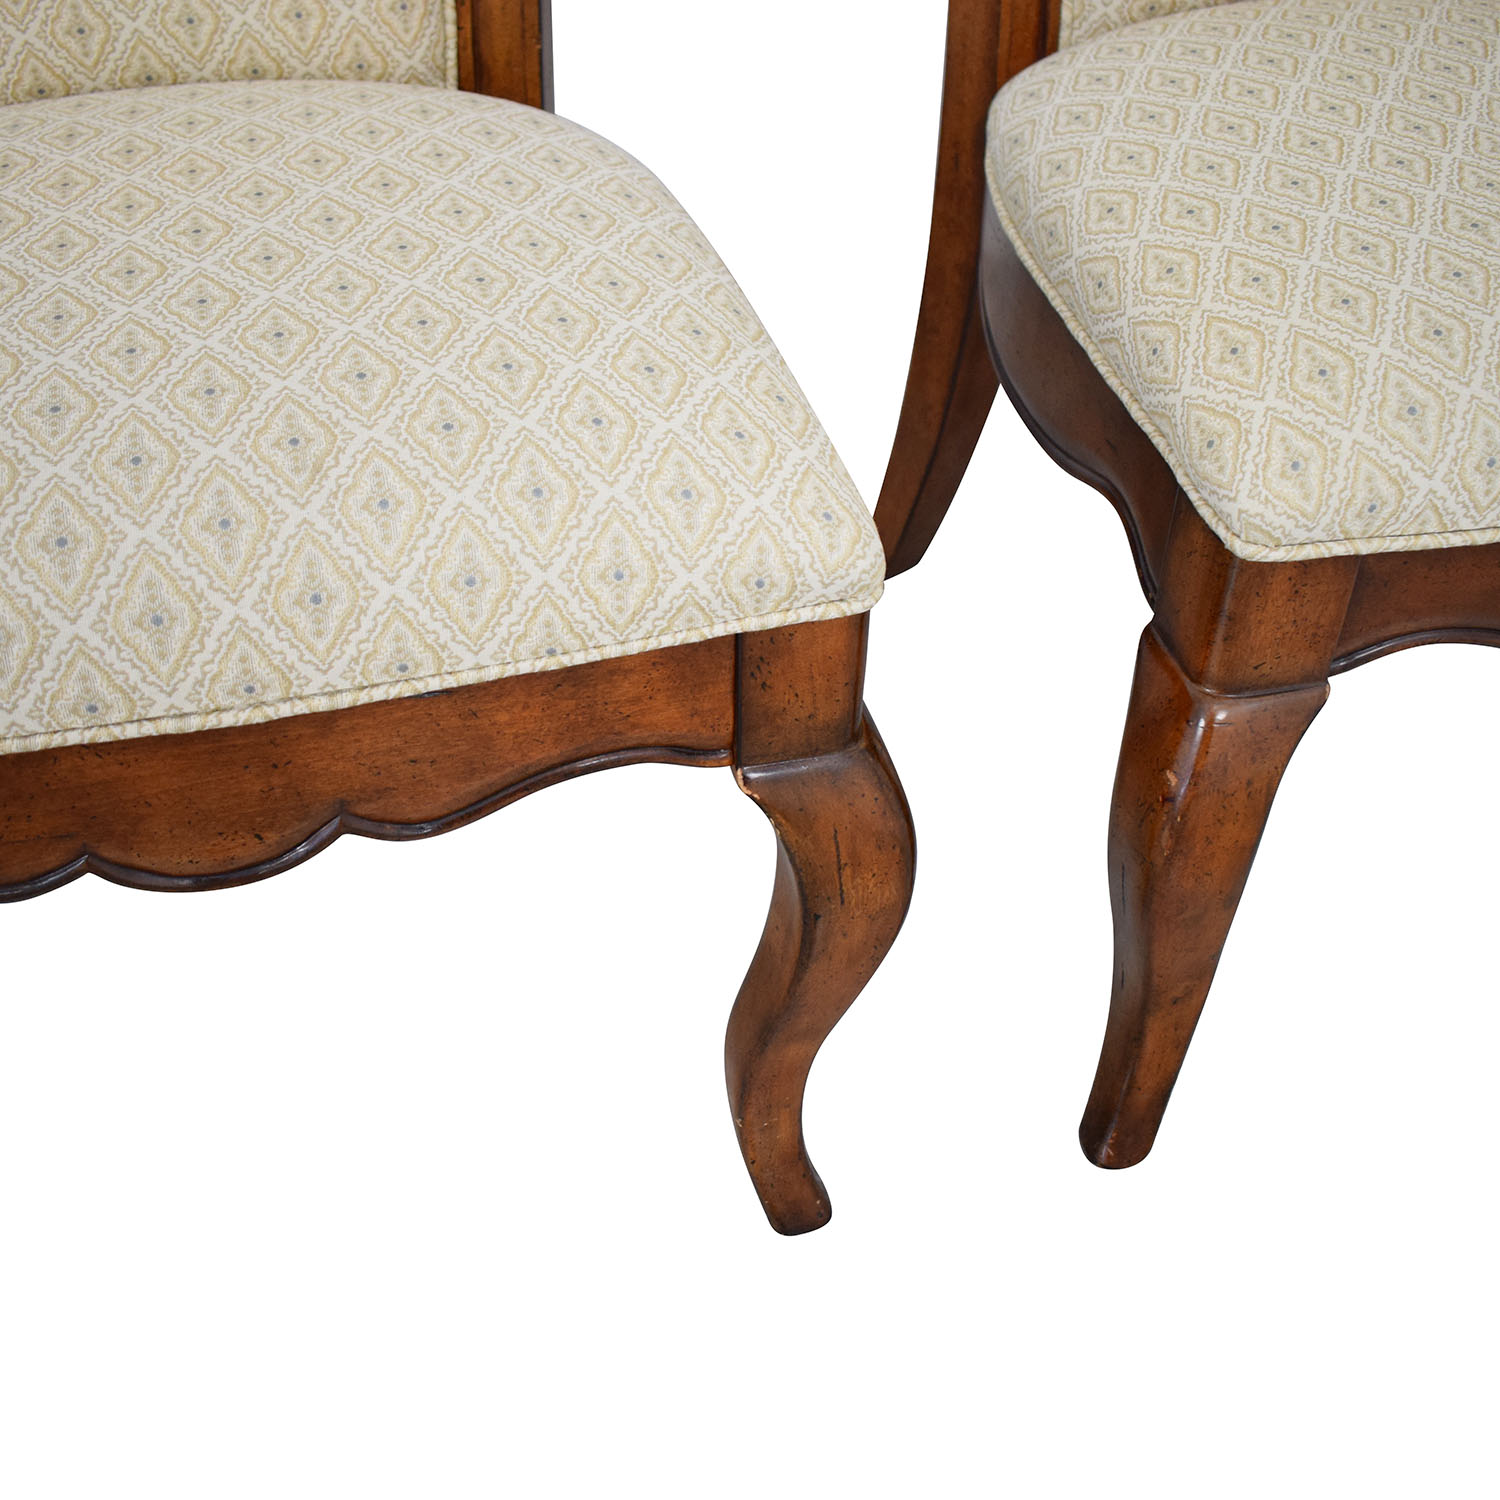 Drexel Heritage Drexel Heritage Extendable Dining Chairs price